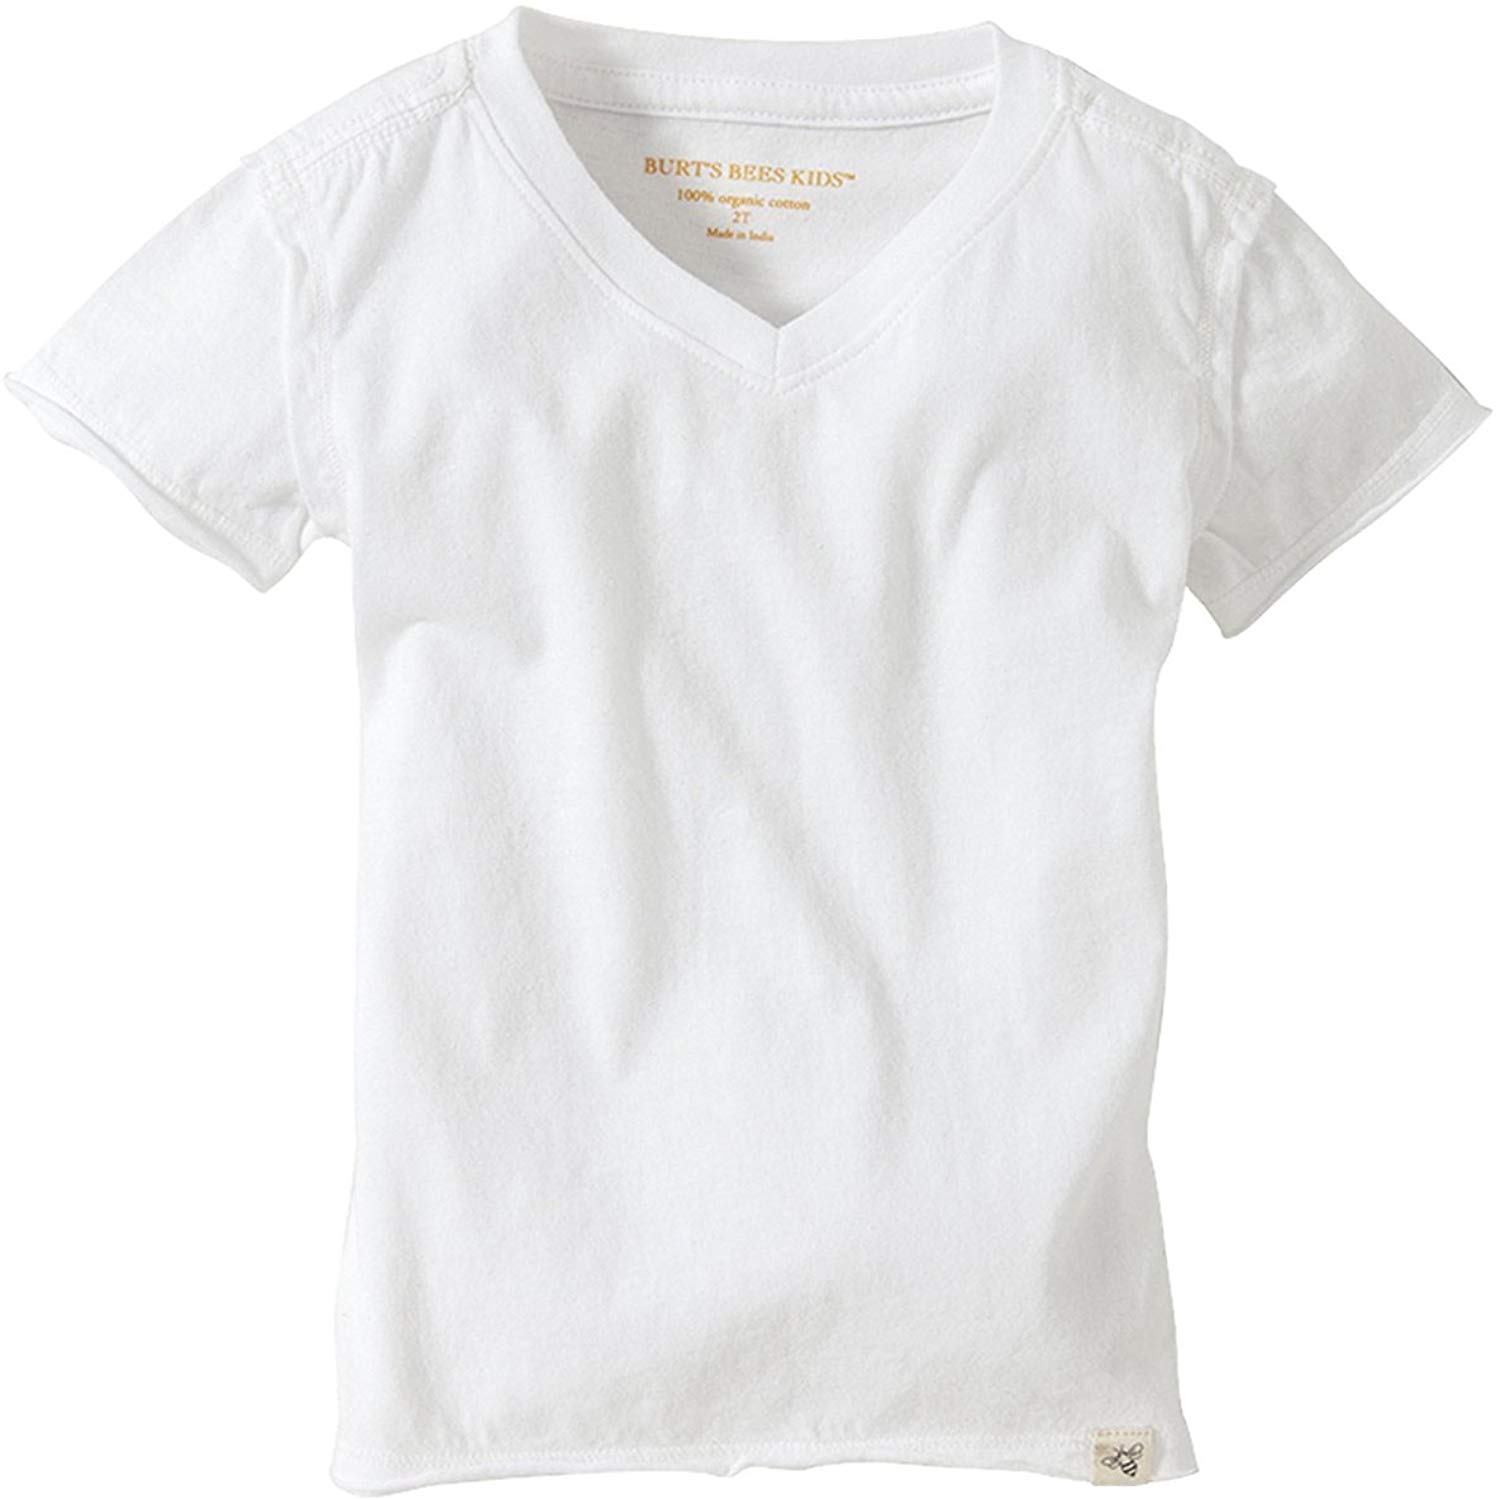 HT18206  Boys' T-Shirt, Short Sleeve V-Neck And Crewneck Tees, 100% Organic Cotton Short  Casual  Cotton  O-Neck